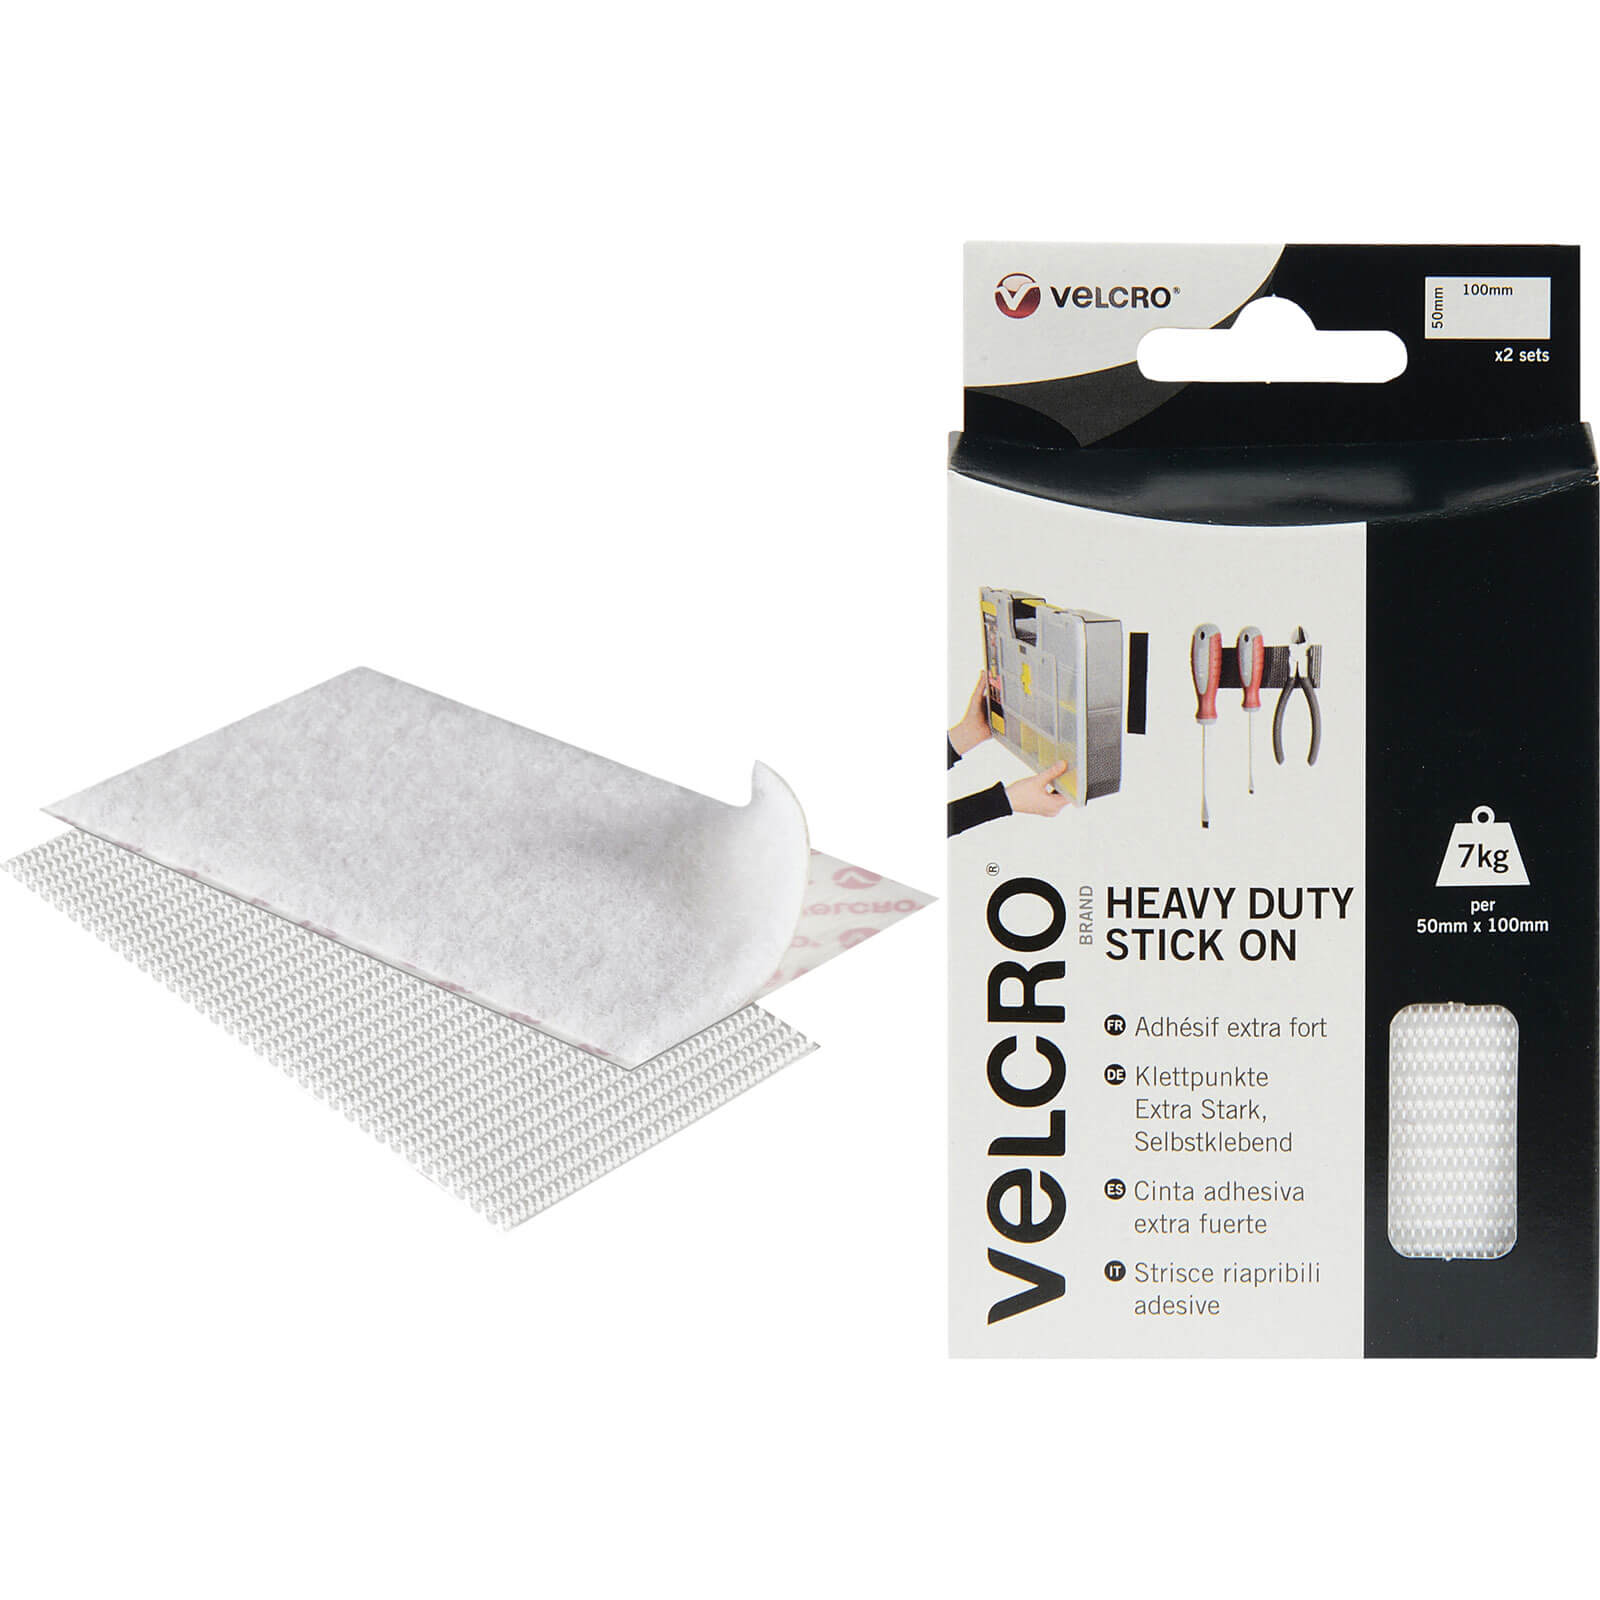 Image of Velcro Heavy Duty Stick On Strips White 50mm 100mm Pack of 2